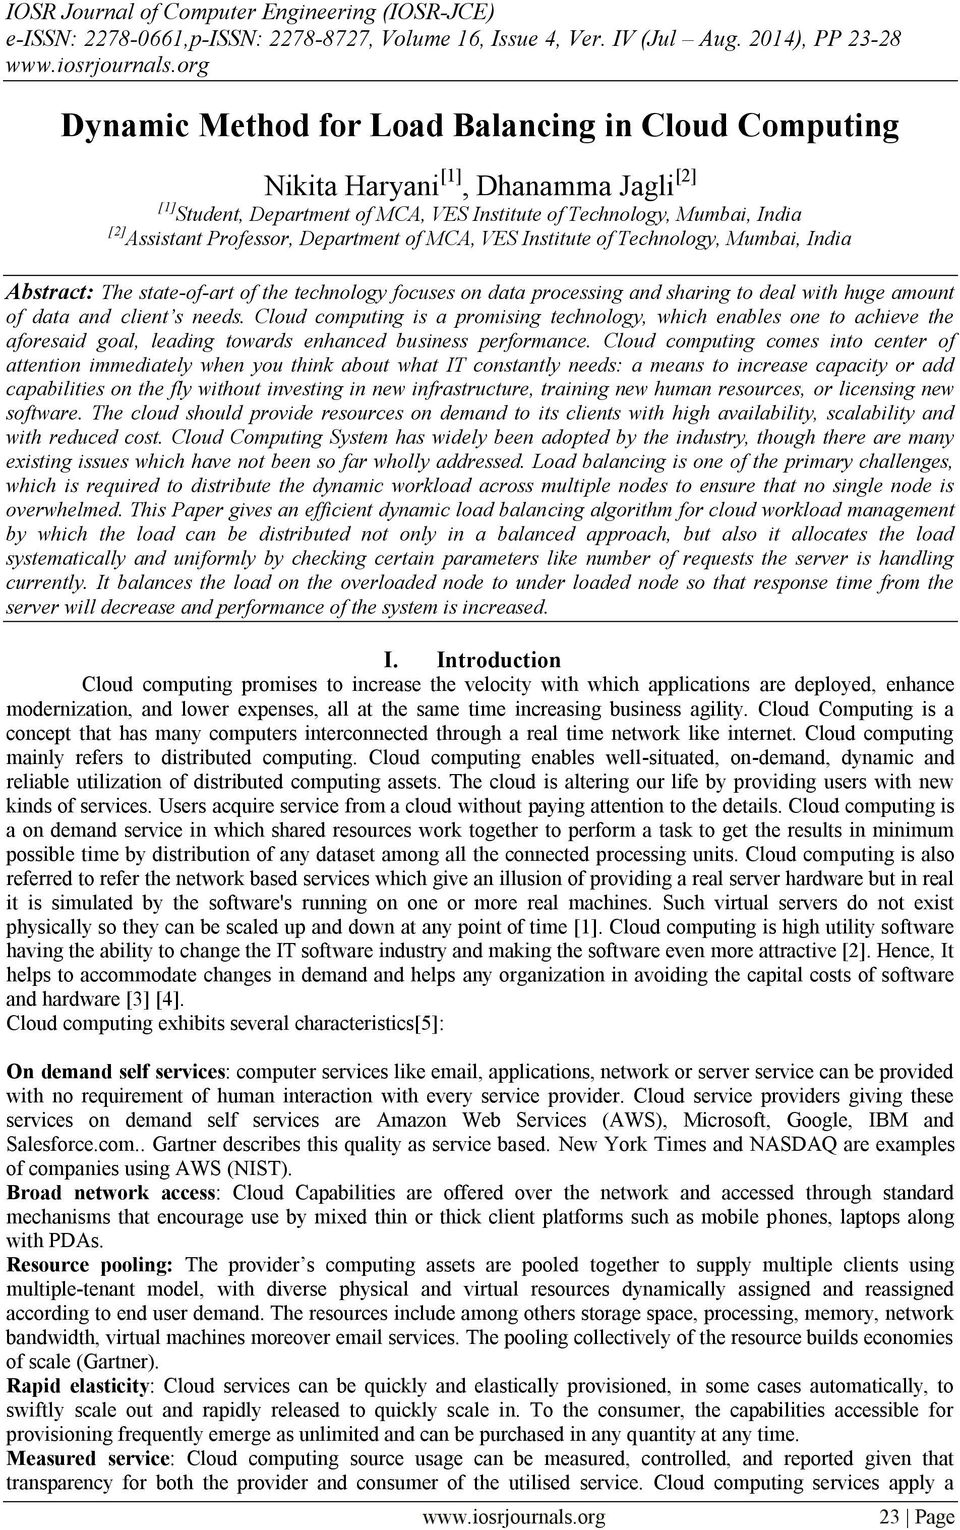 Professor, Department of MCA, VES Institute of Technology, Mumbai, India Abstract: The state-of-art of the technology focuses on data processing and sharing to deal with huge amount of data and